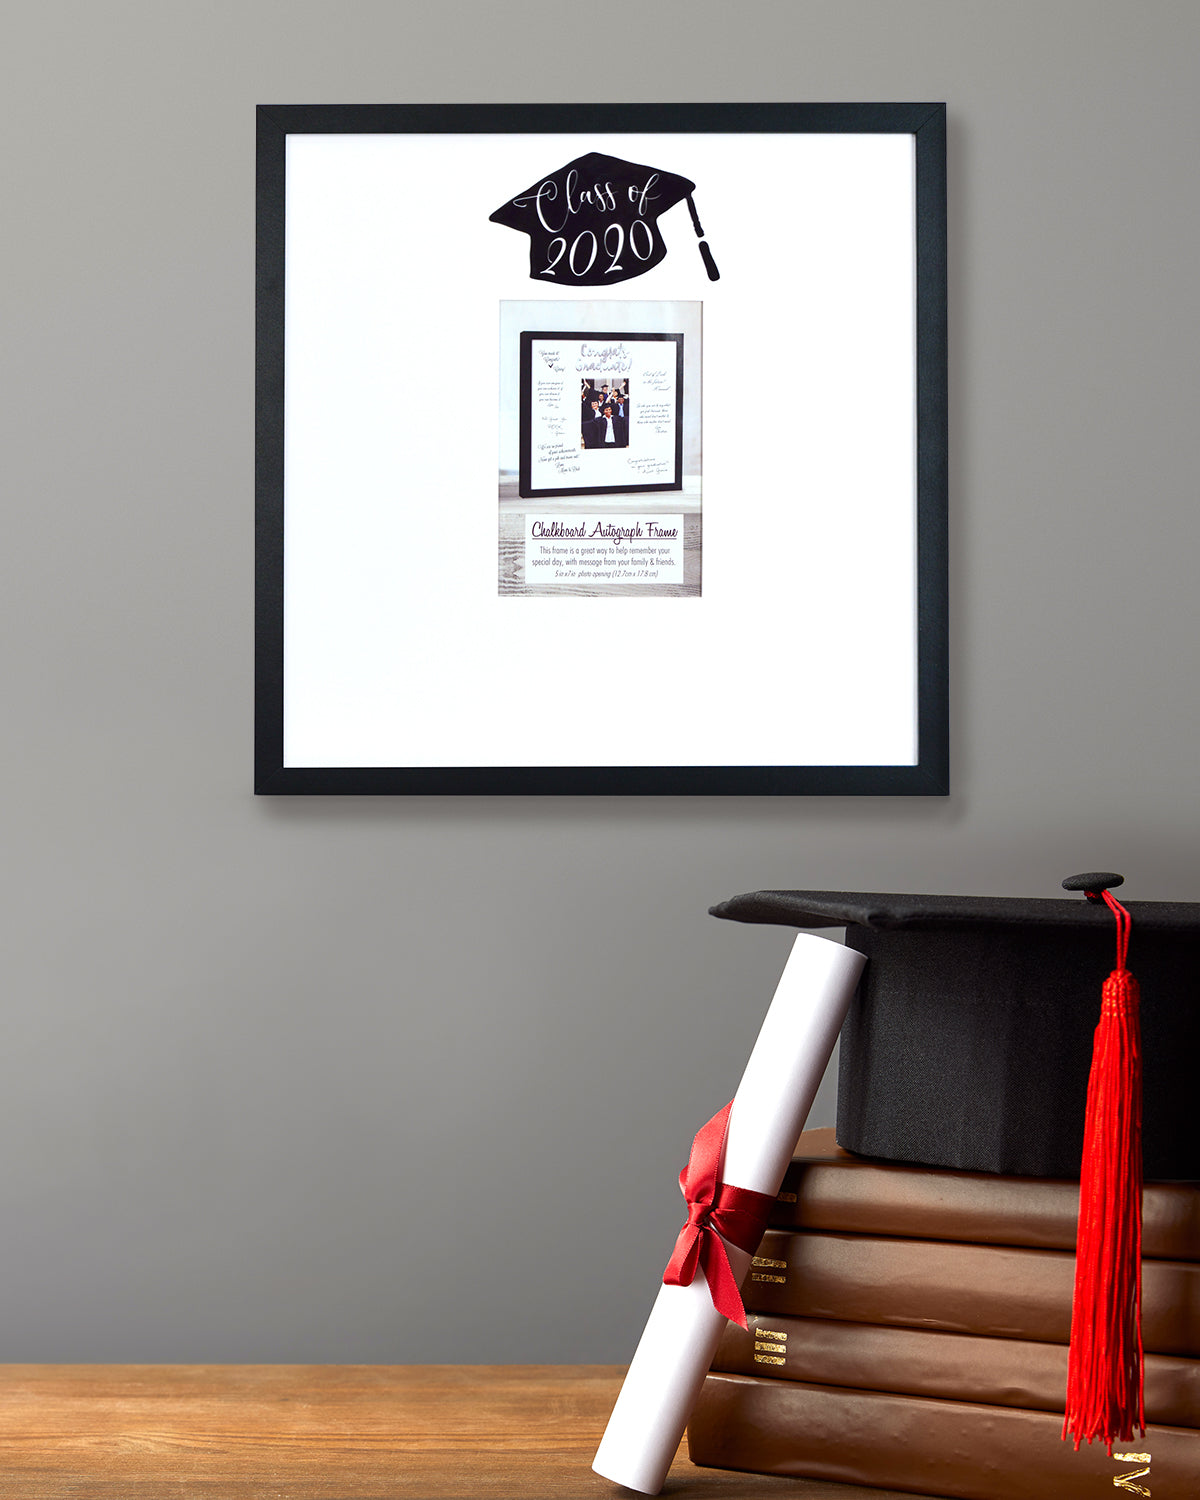 5-inch by 7-inch Photo Opening Matted Autograph Graduation Picture Frame Class of 2020